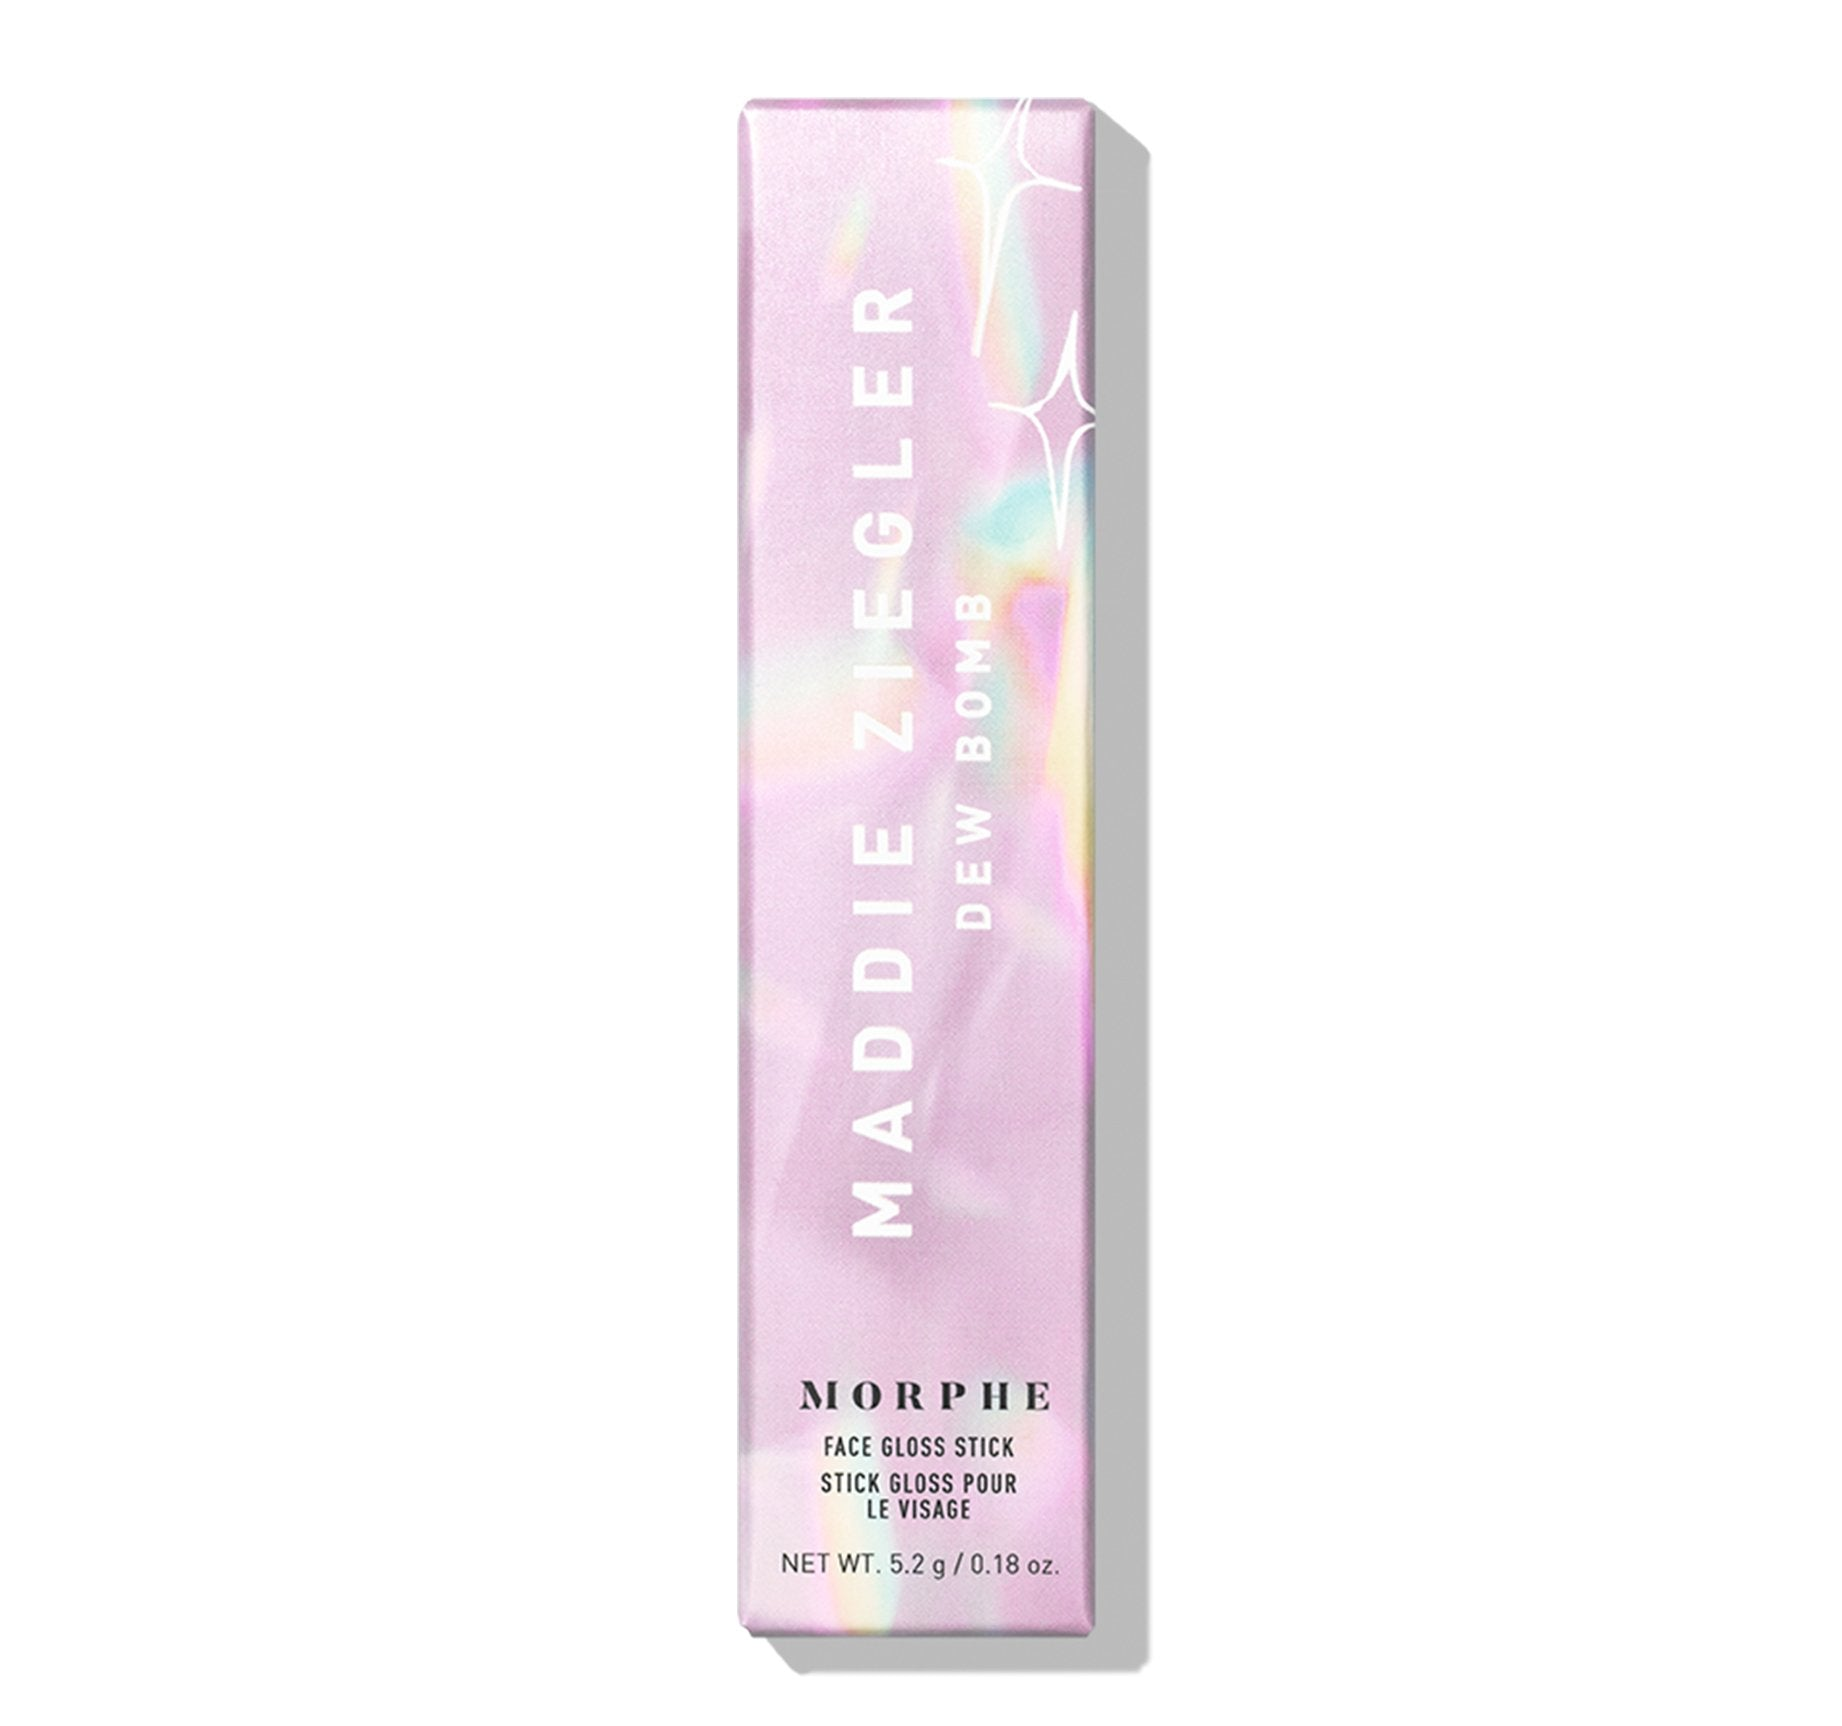 MORPHE X MADDIE ZIEGLER DEW BOMB FACE GLOSS STICK, view larger image